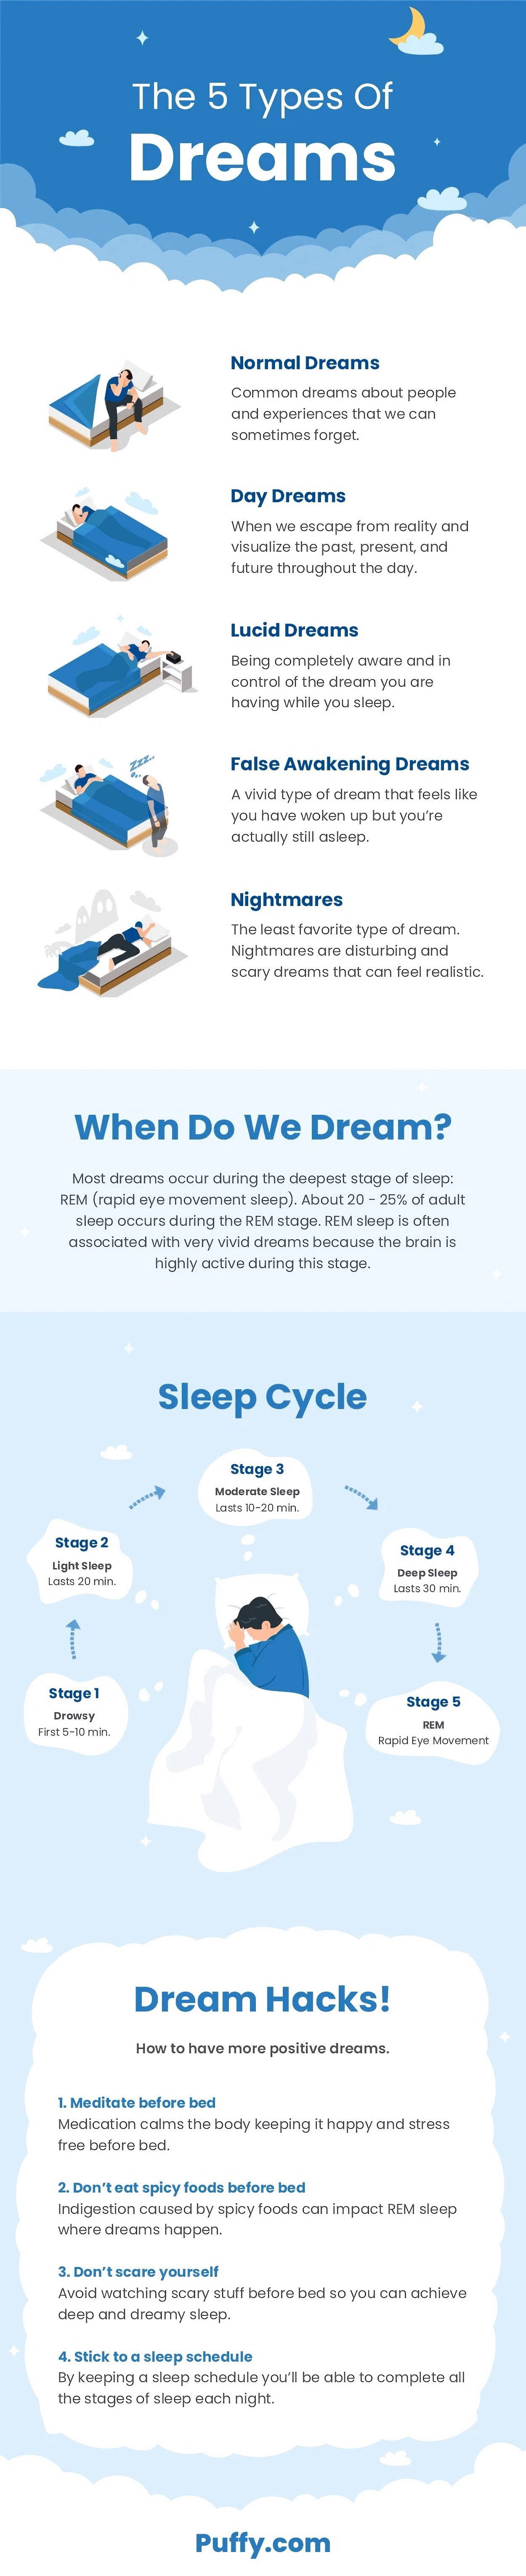 Types Of Dreams Infographic